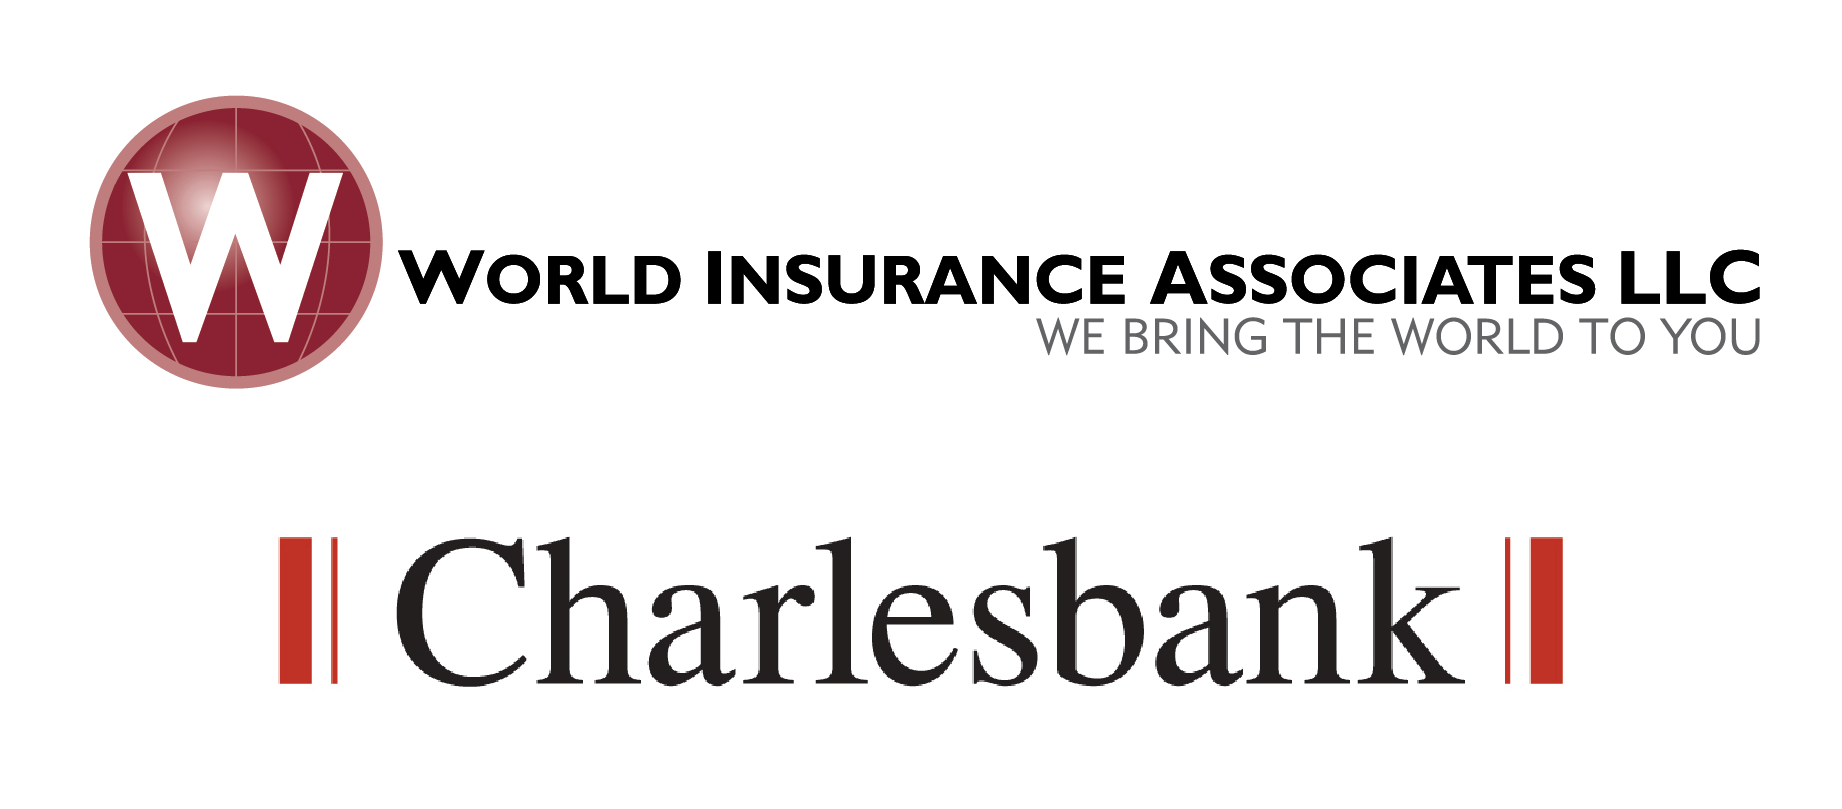 World Insurance Associates, We Bring The World To You, Charlesbank